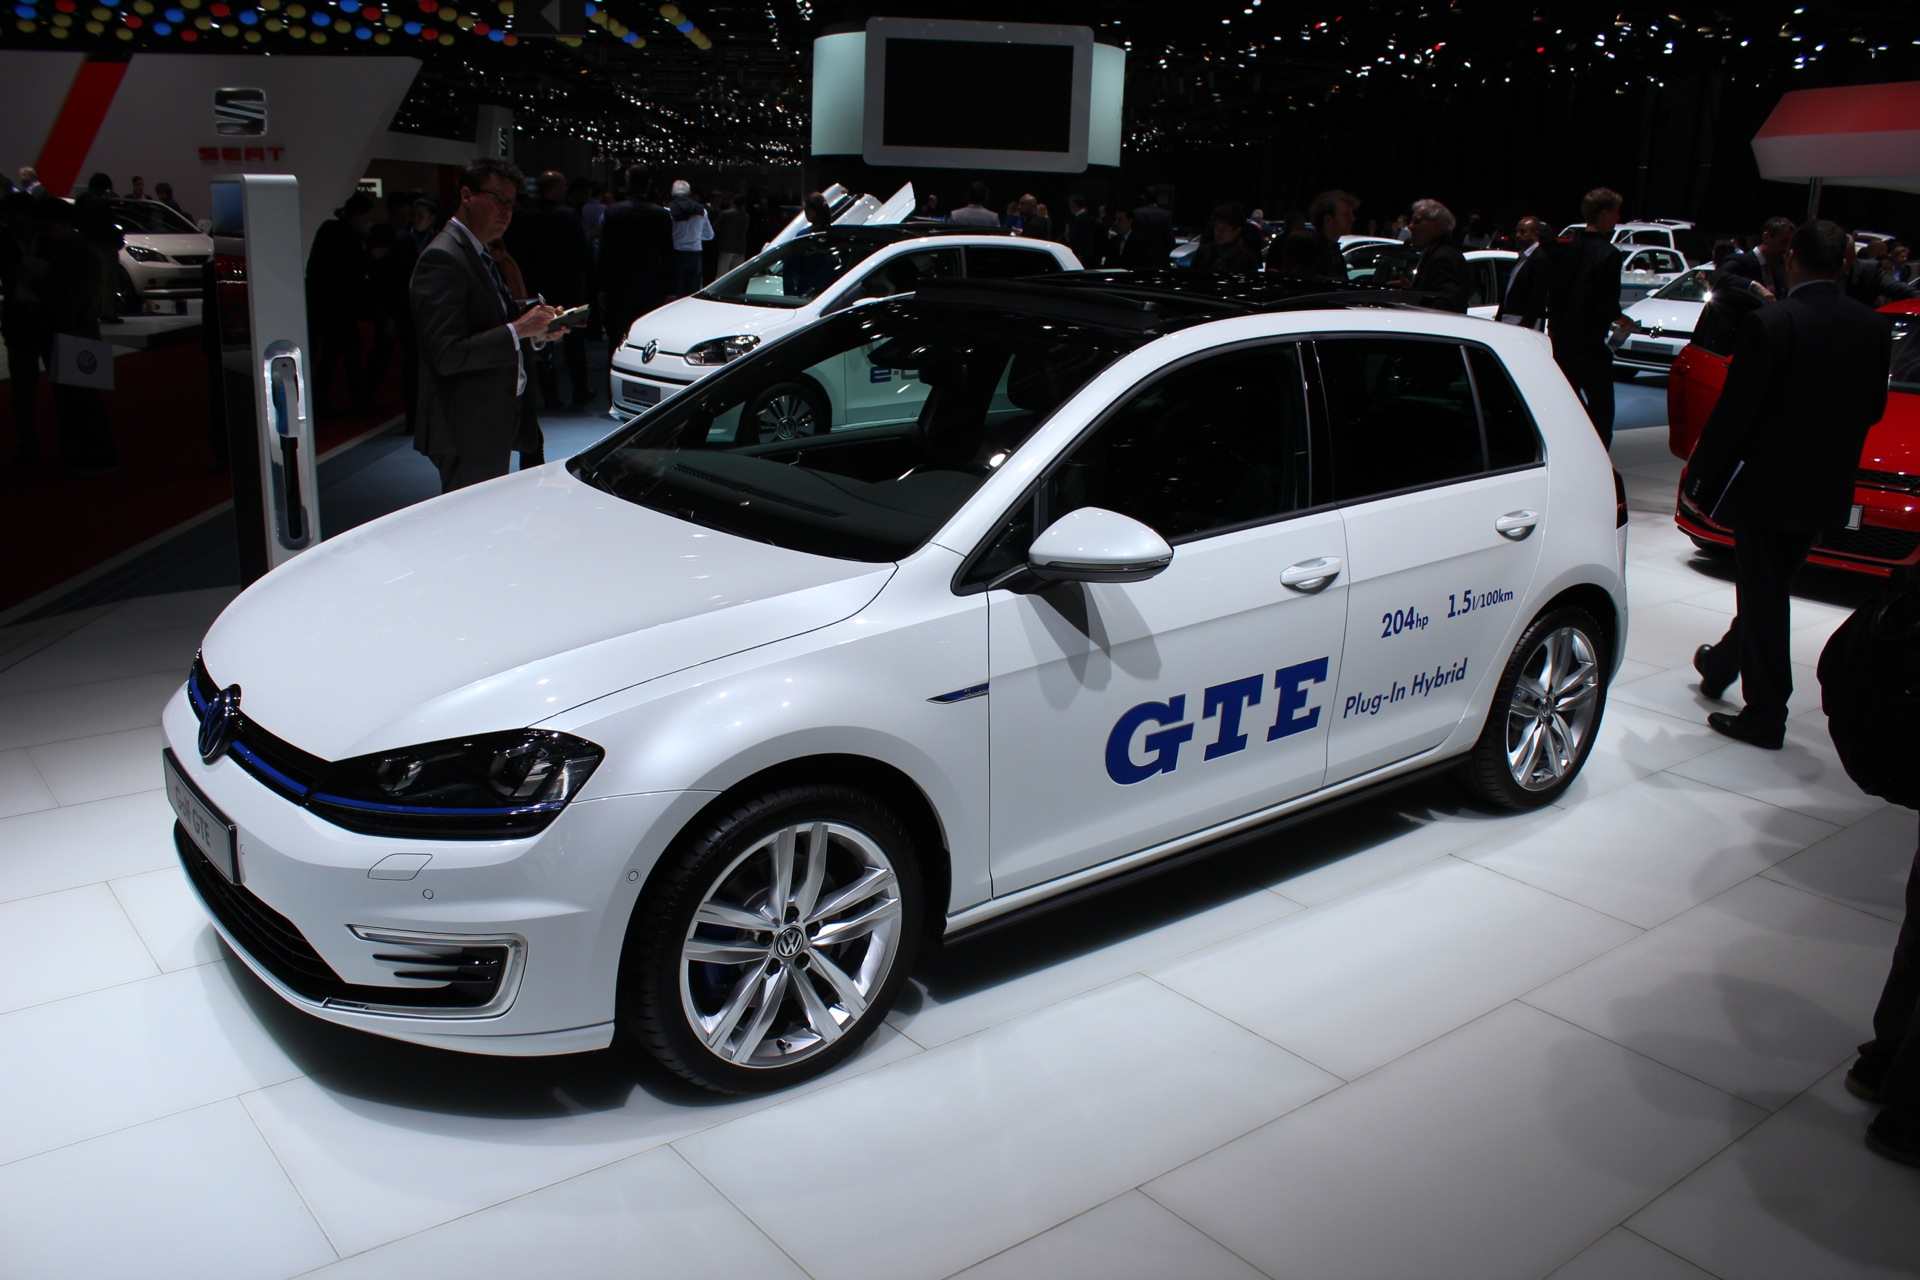 Volkswagen Golf Gte Plug In Hybrid Live Photos From Geneva